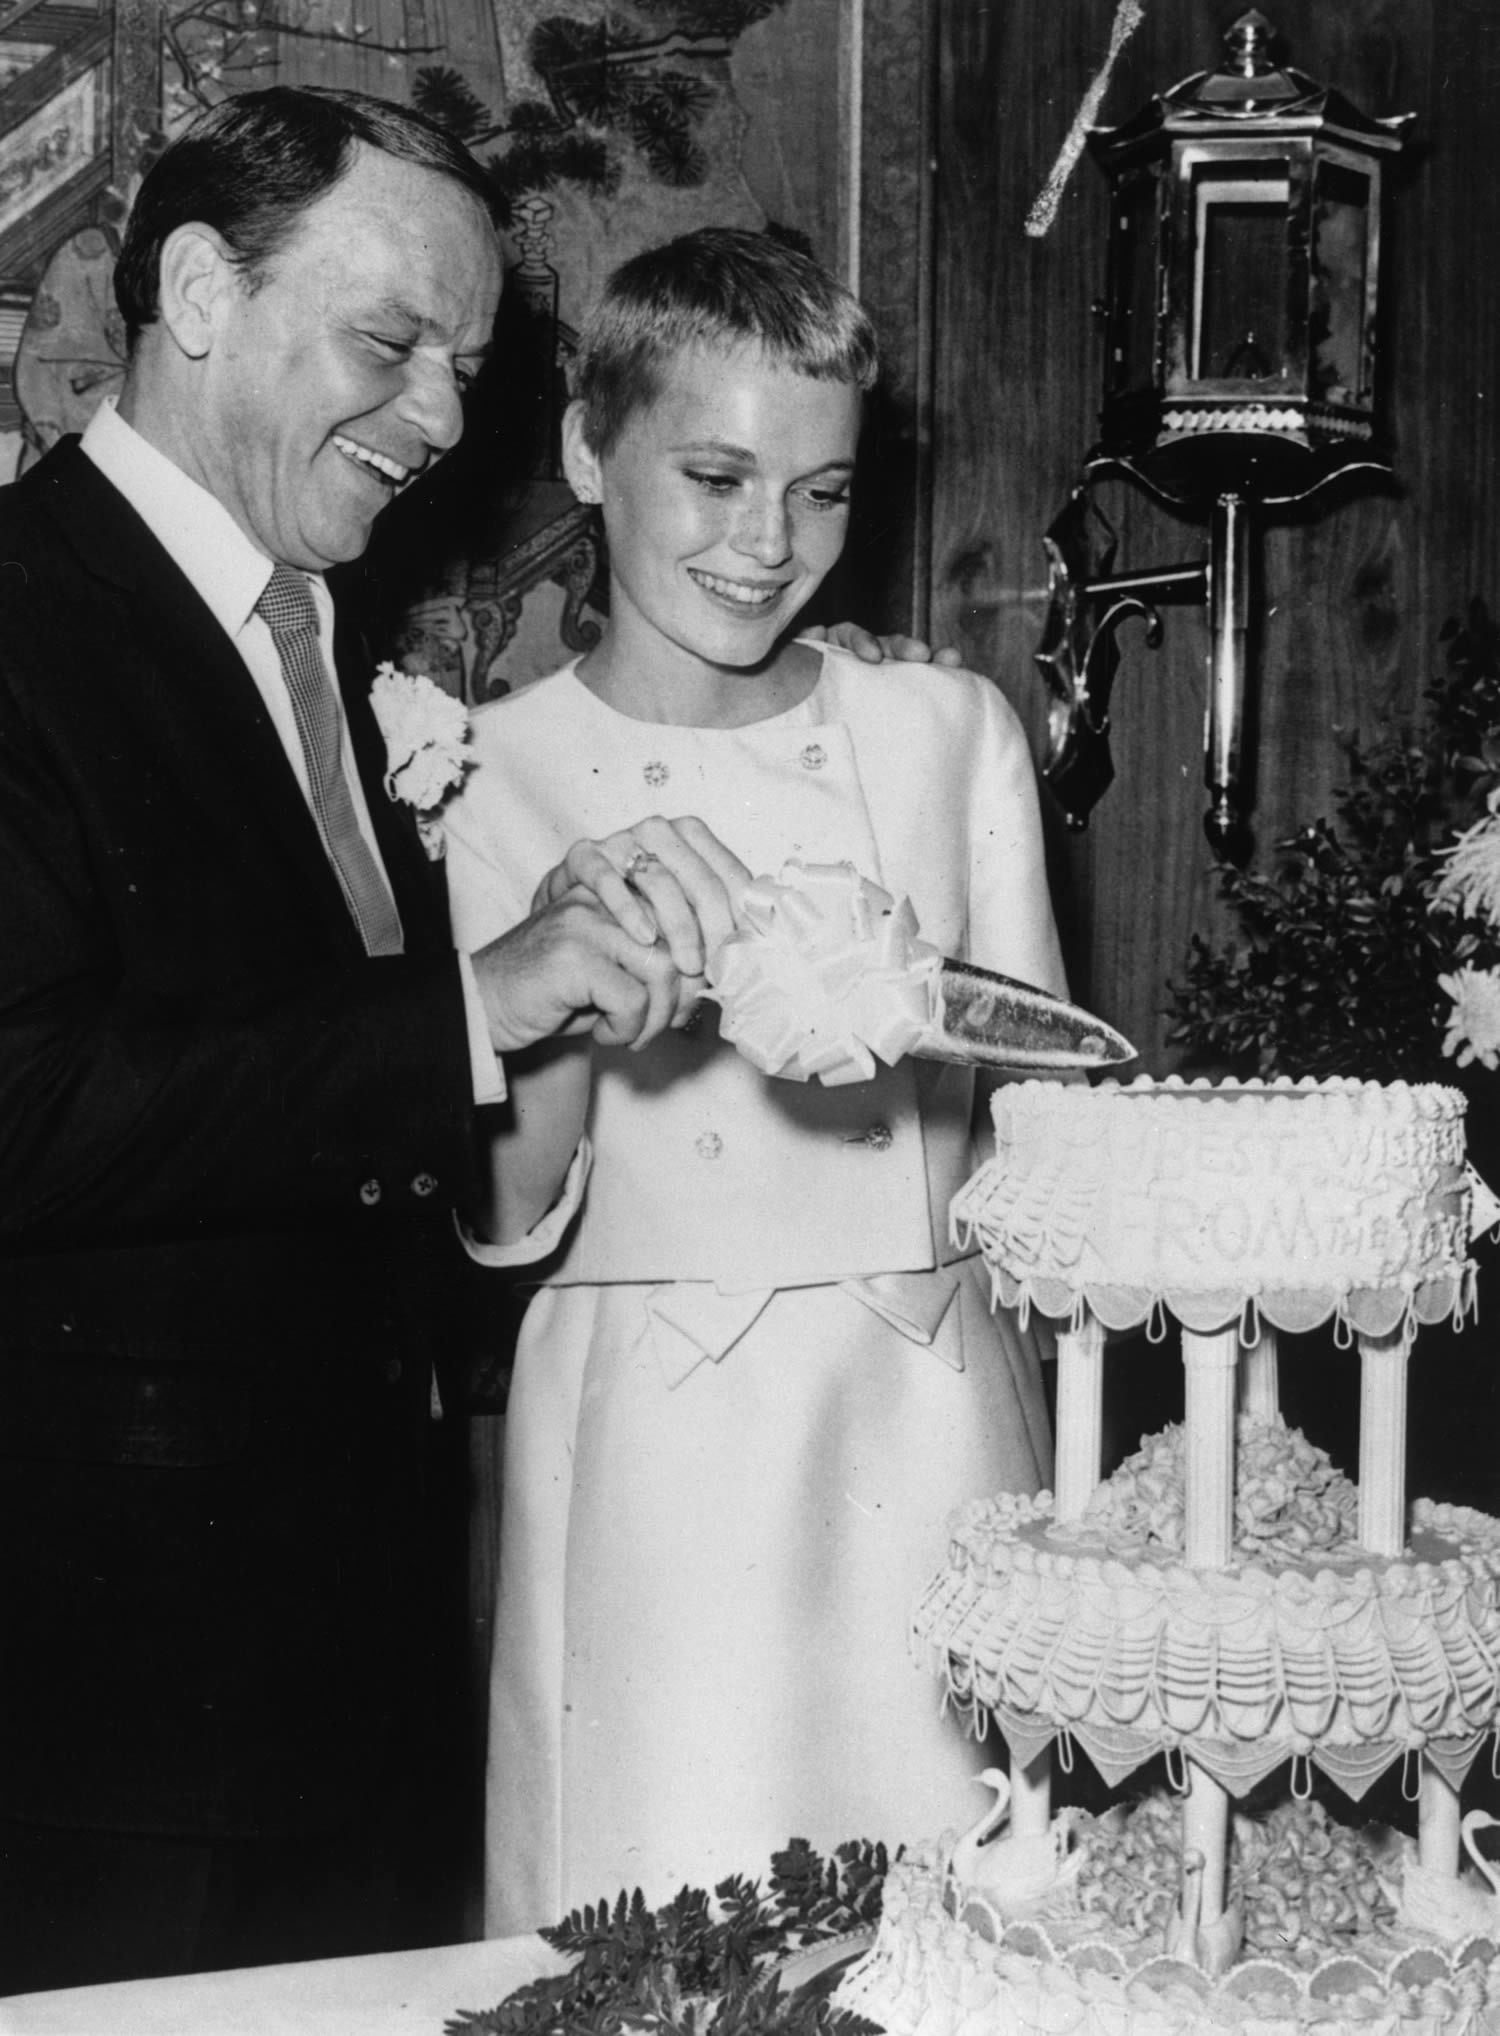 Mia Farrow and Frank Sinatra's 1966 wedding | follow along on Instagram @ thewildflowers.events